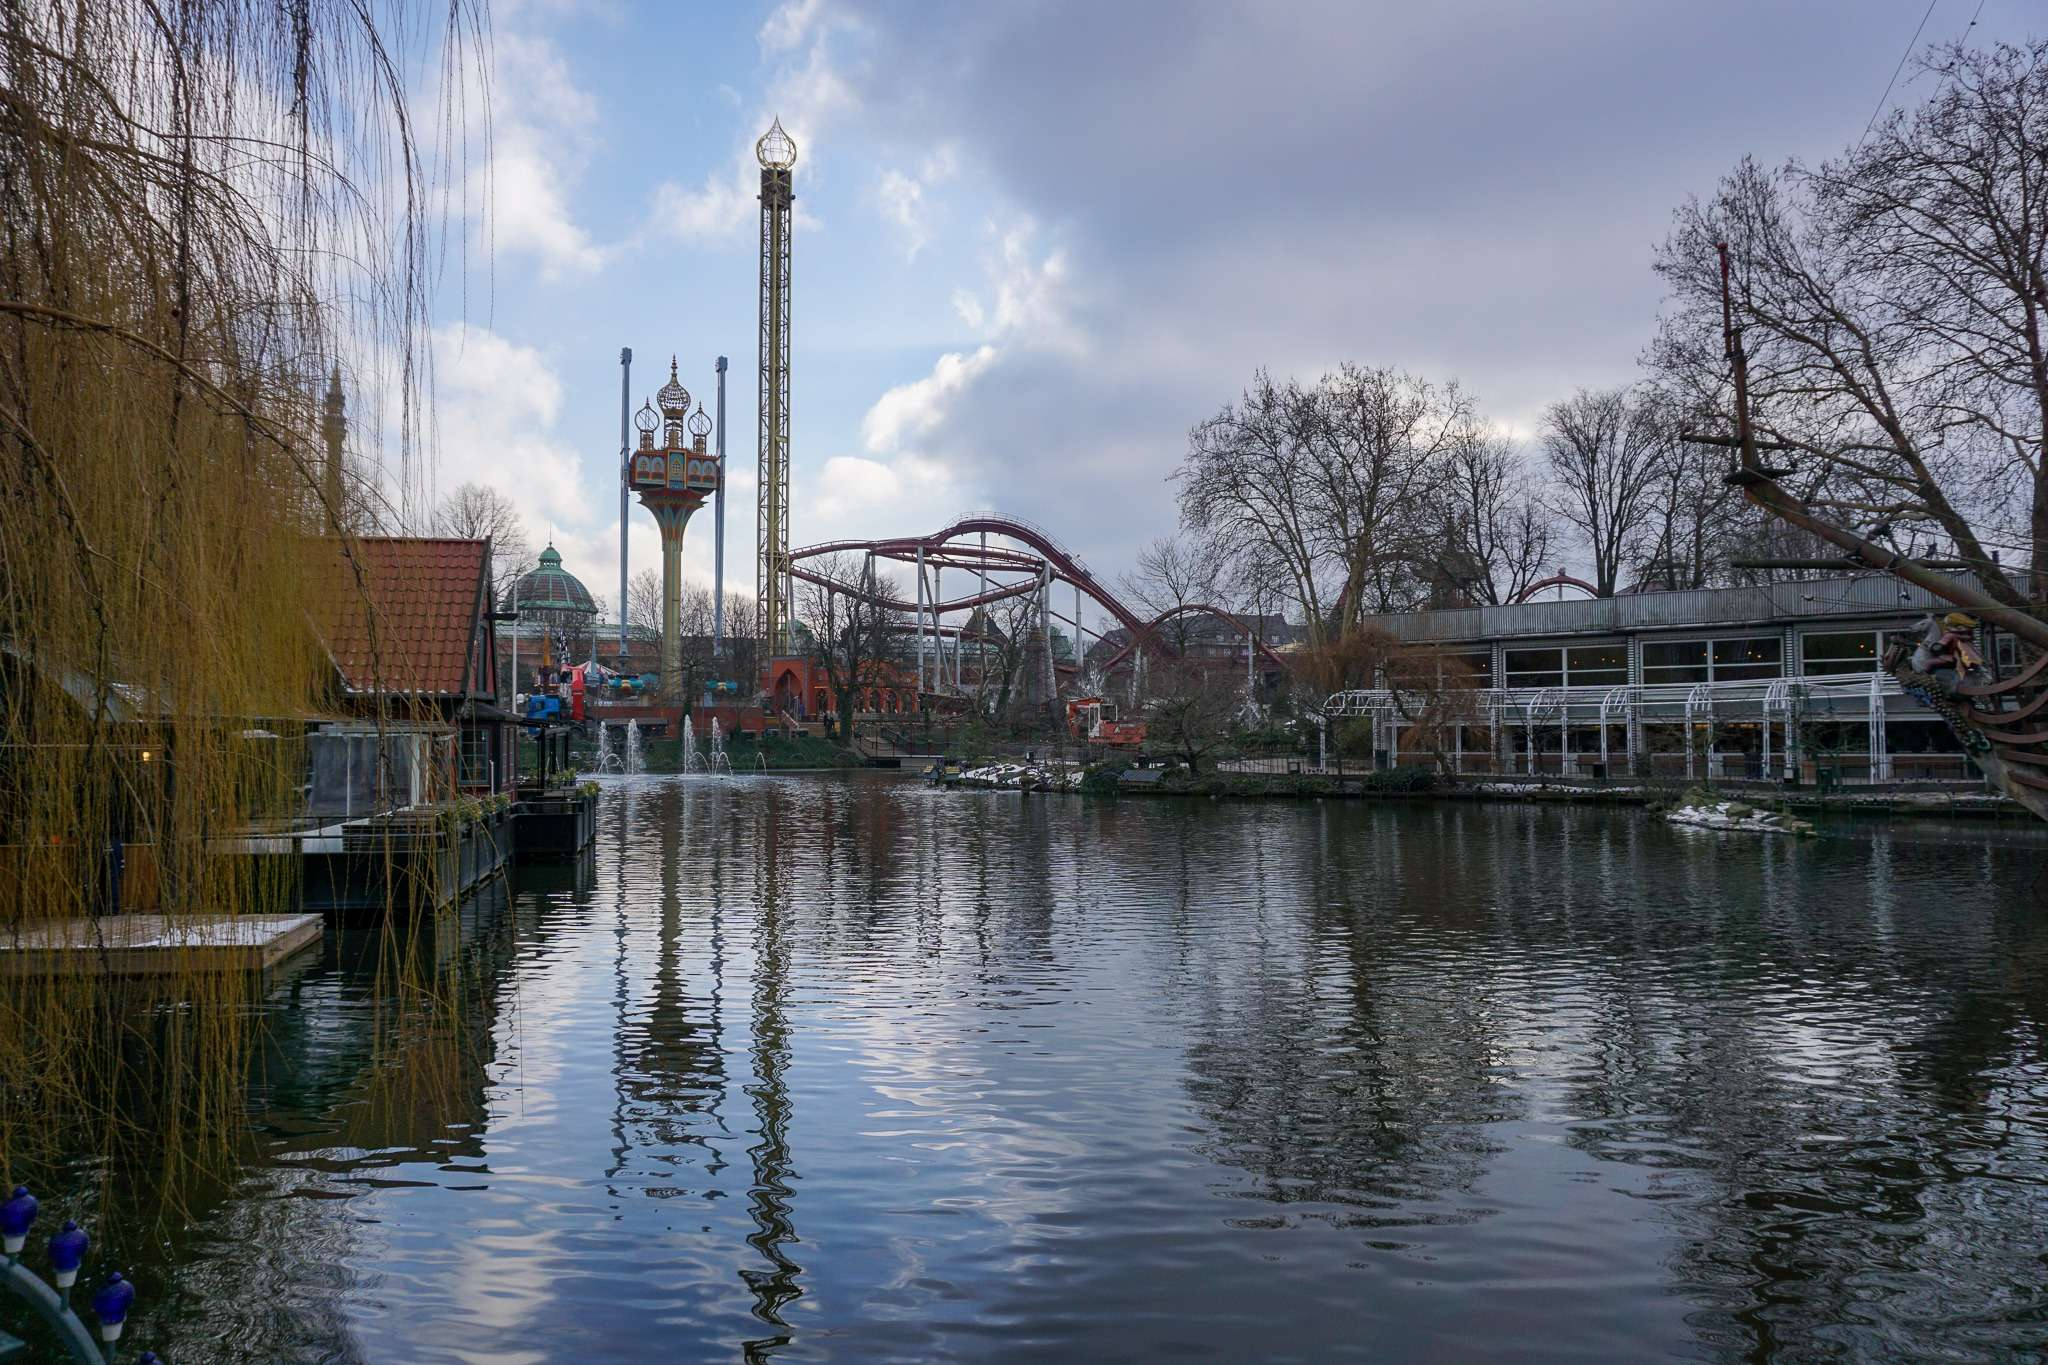 fairground rides at Tivoli Gardens as seen from across the lake